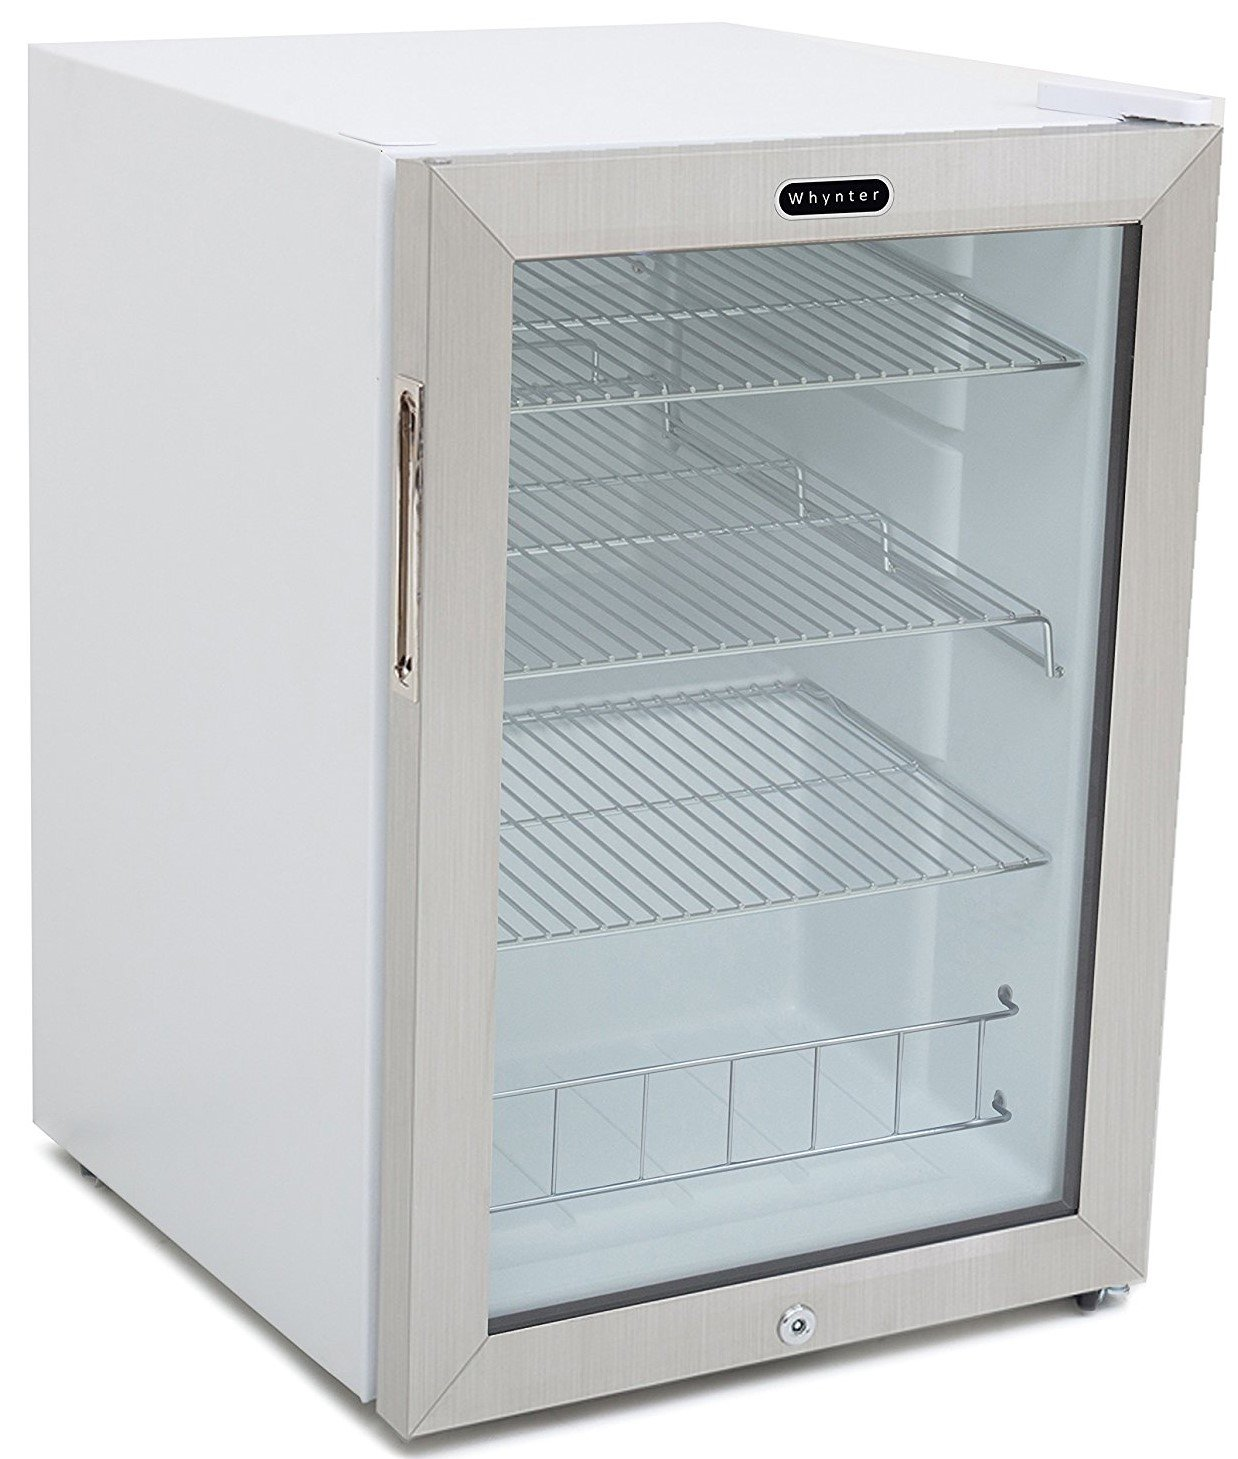 Amazon.com: Whynter BR-091WS Beverage Refrigerator with Lock, 90 Can ...